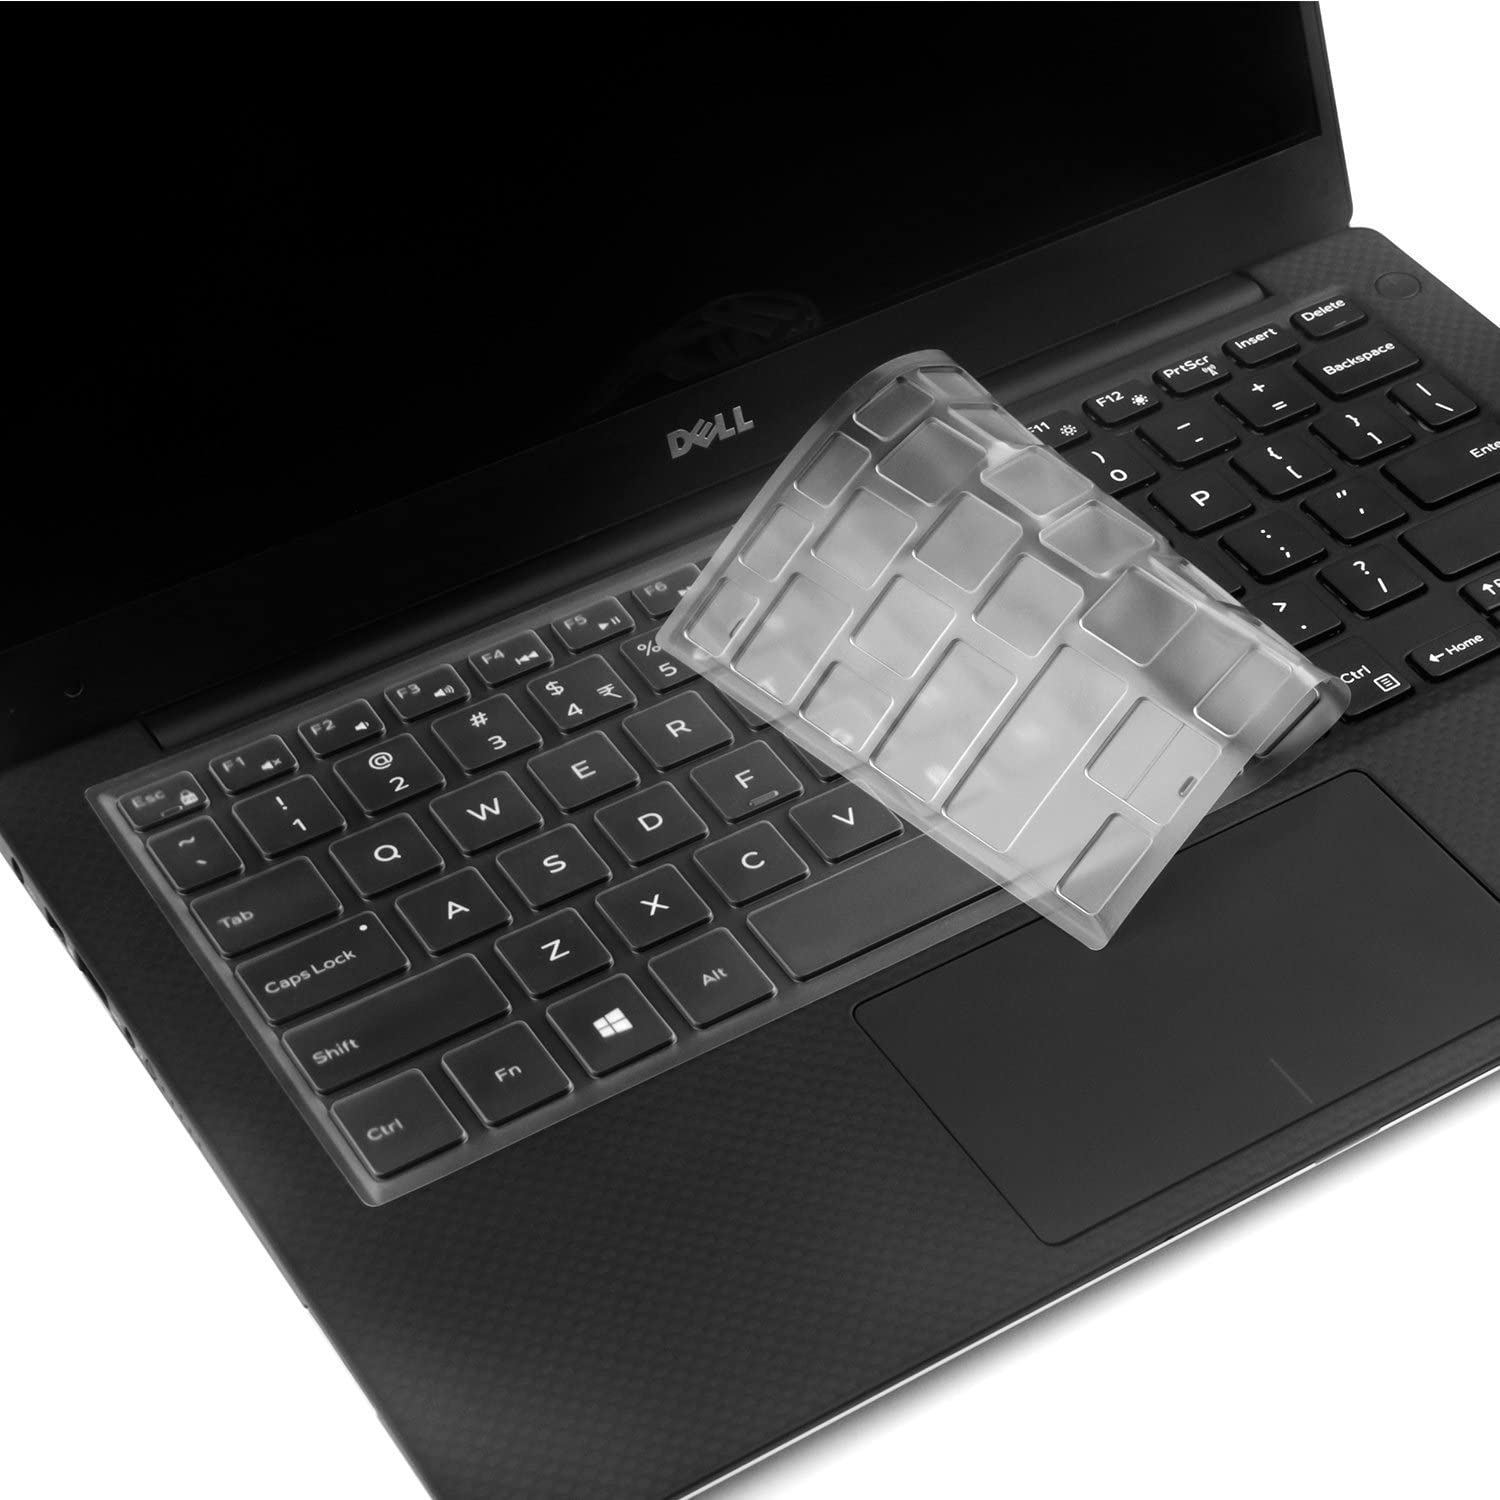 """Ultra Thin TPU Clear Transparent Keyboard Cover for Dell Inspiron 13-7347 13-7348 13-7352 13-7353 13-7359 15-7547 15-7548, XPS 13-9343 13-9350 13-9360 13.3"""" Laptop(See Product Description)"""